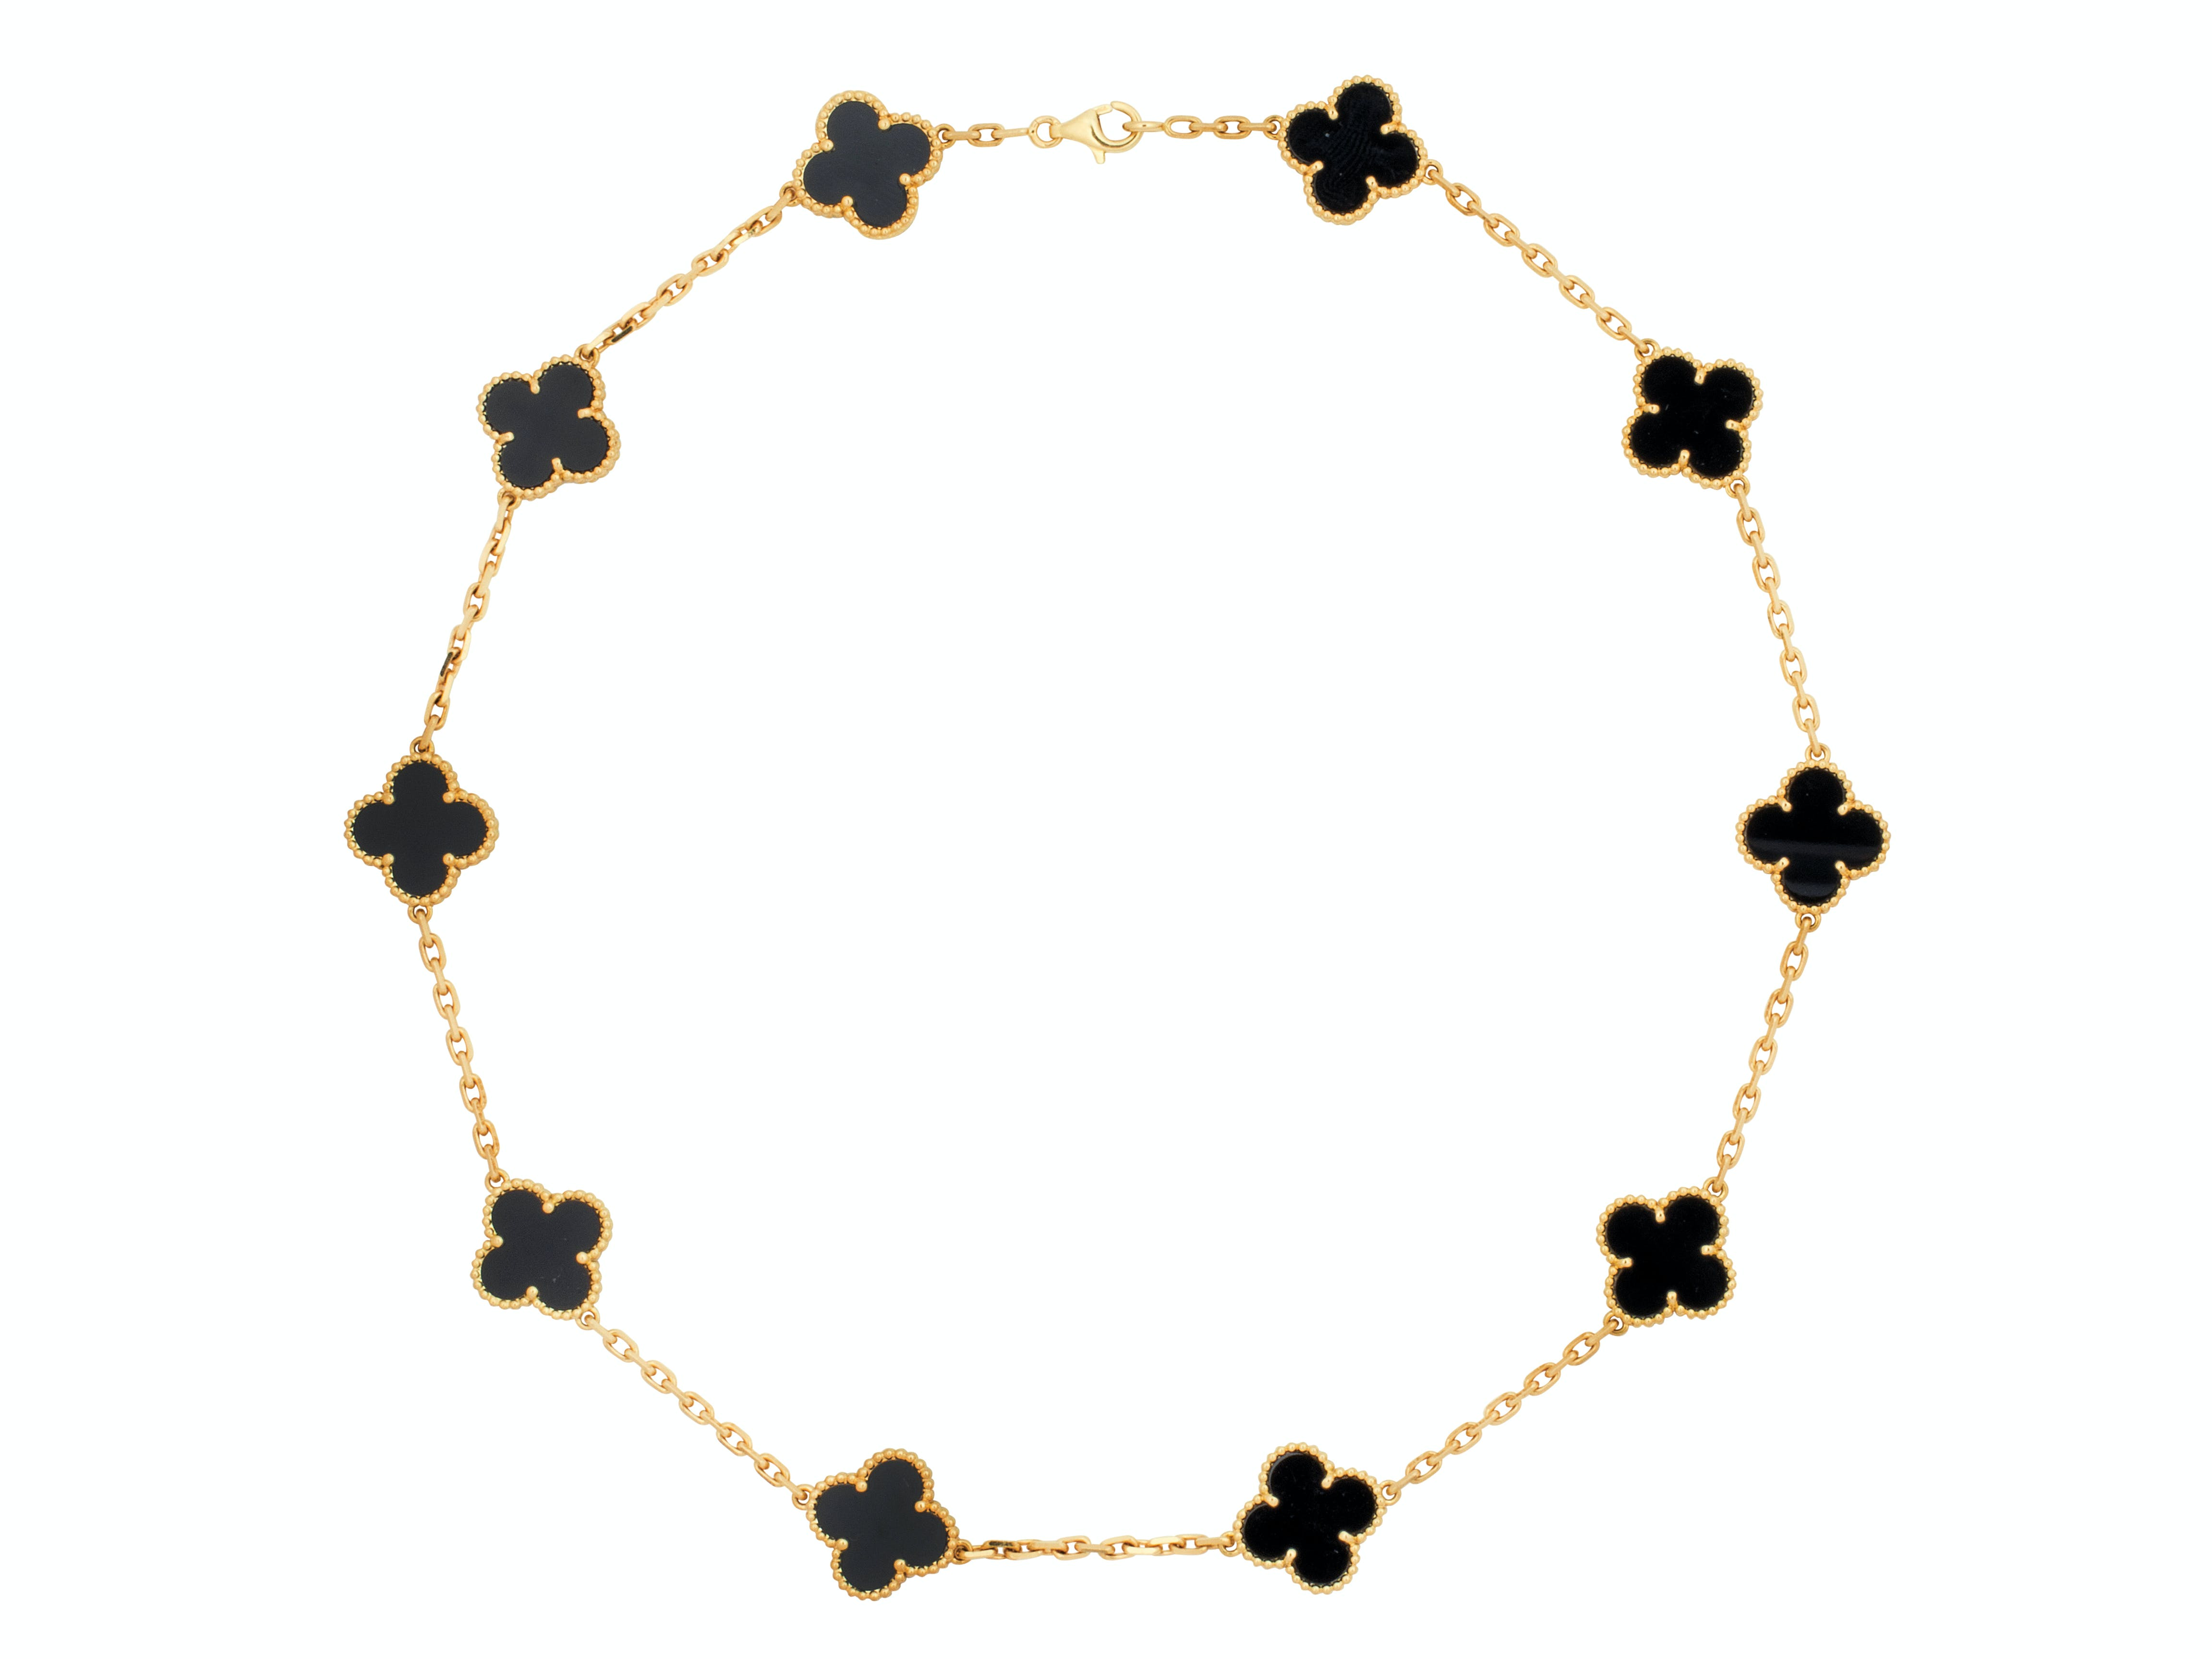 An Onyx and Gold 'Alhambra' Necklace, Van Cleef & Arpels, circa 2014